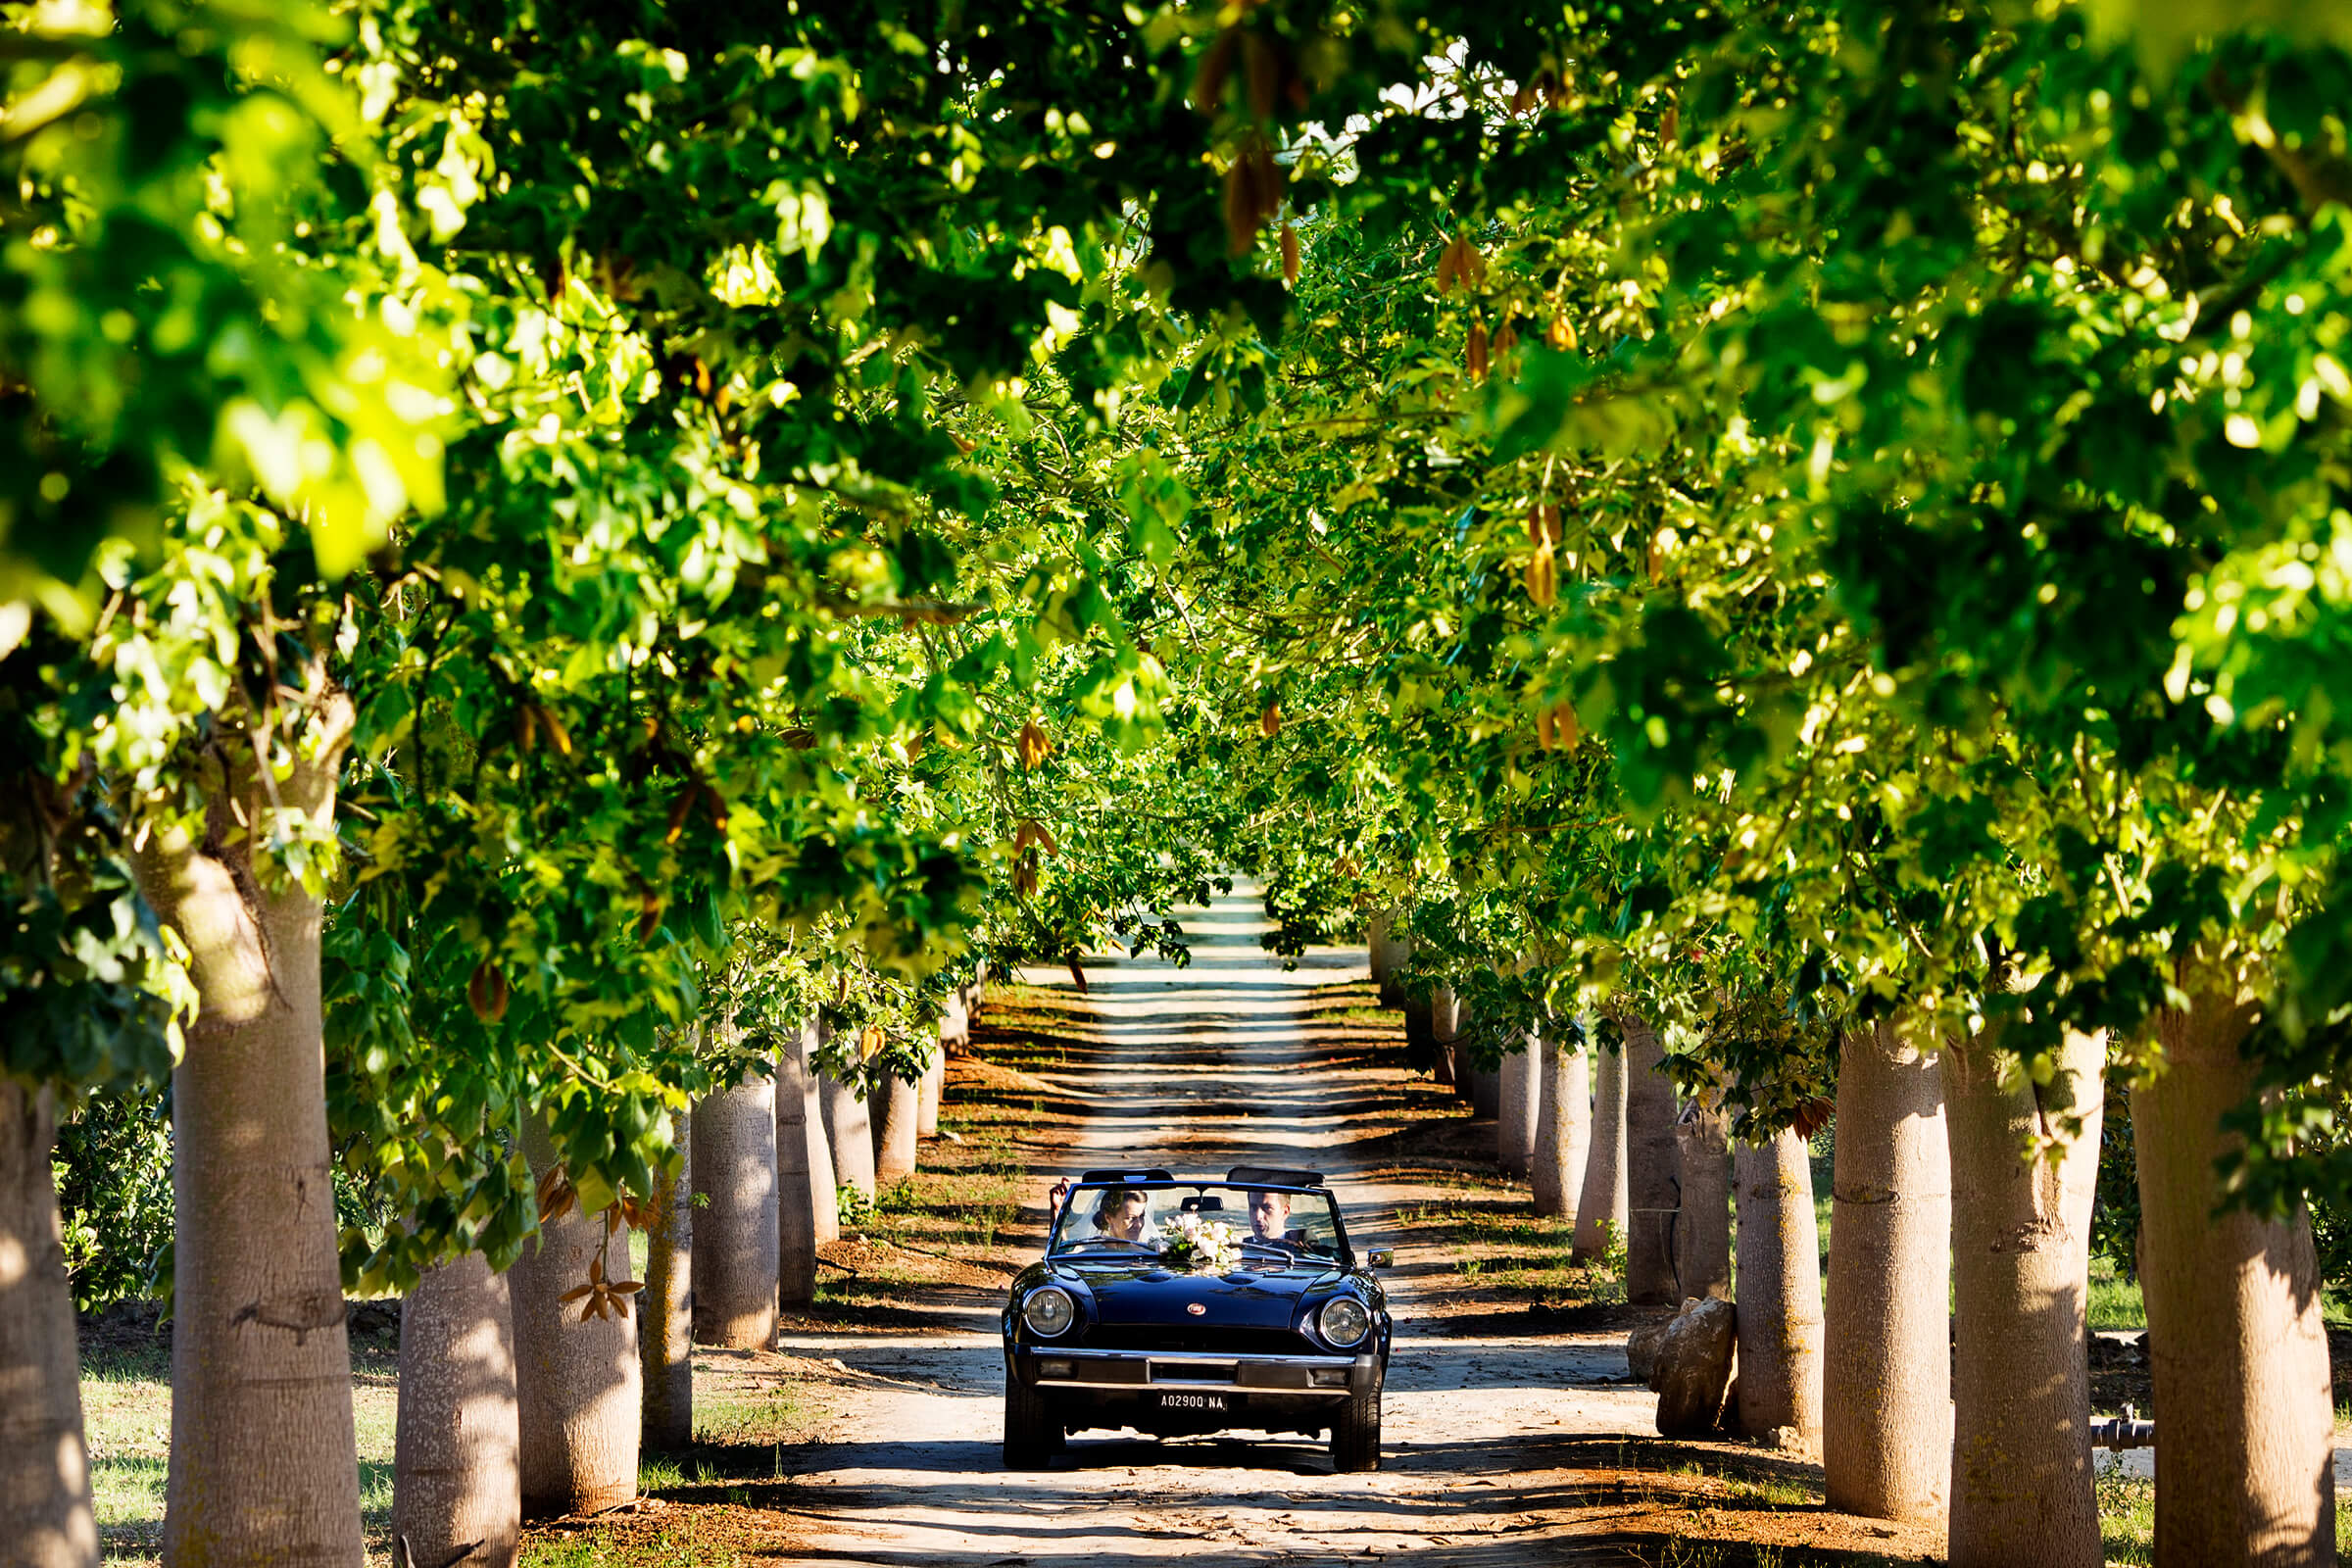 Couple auto exit under arches of trees in Italy - photo by Nino Lombardo Photographer